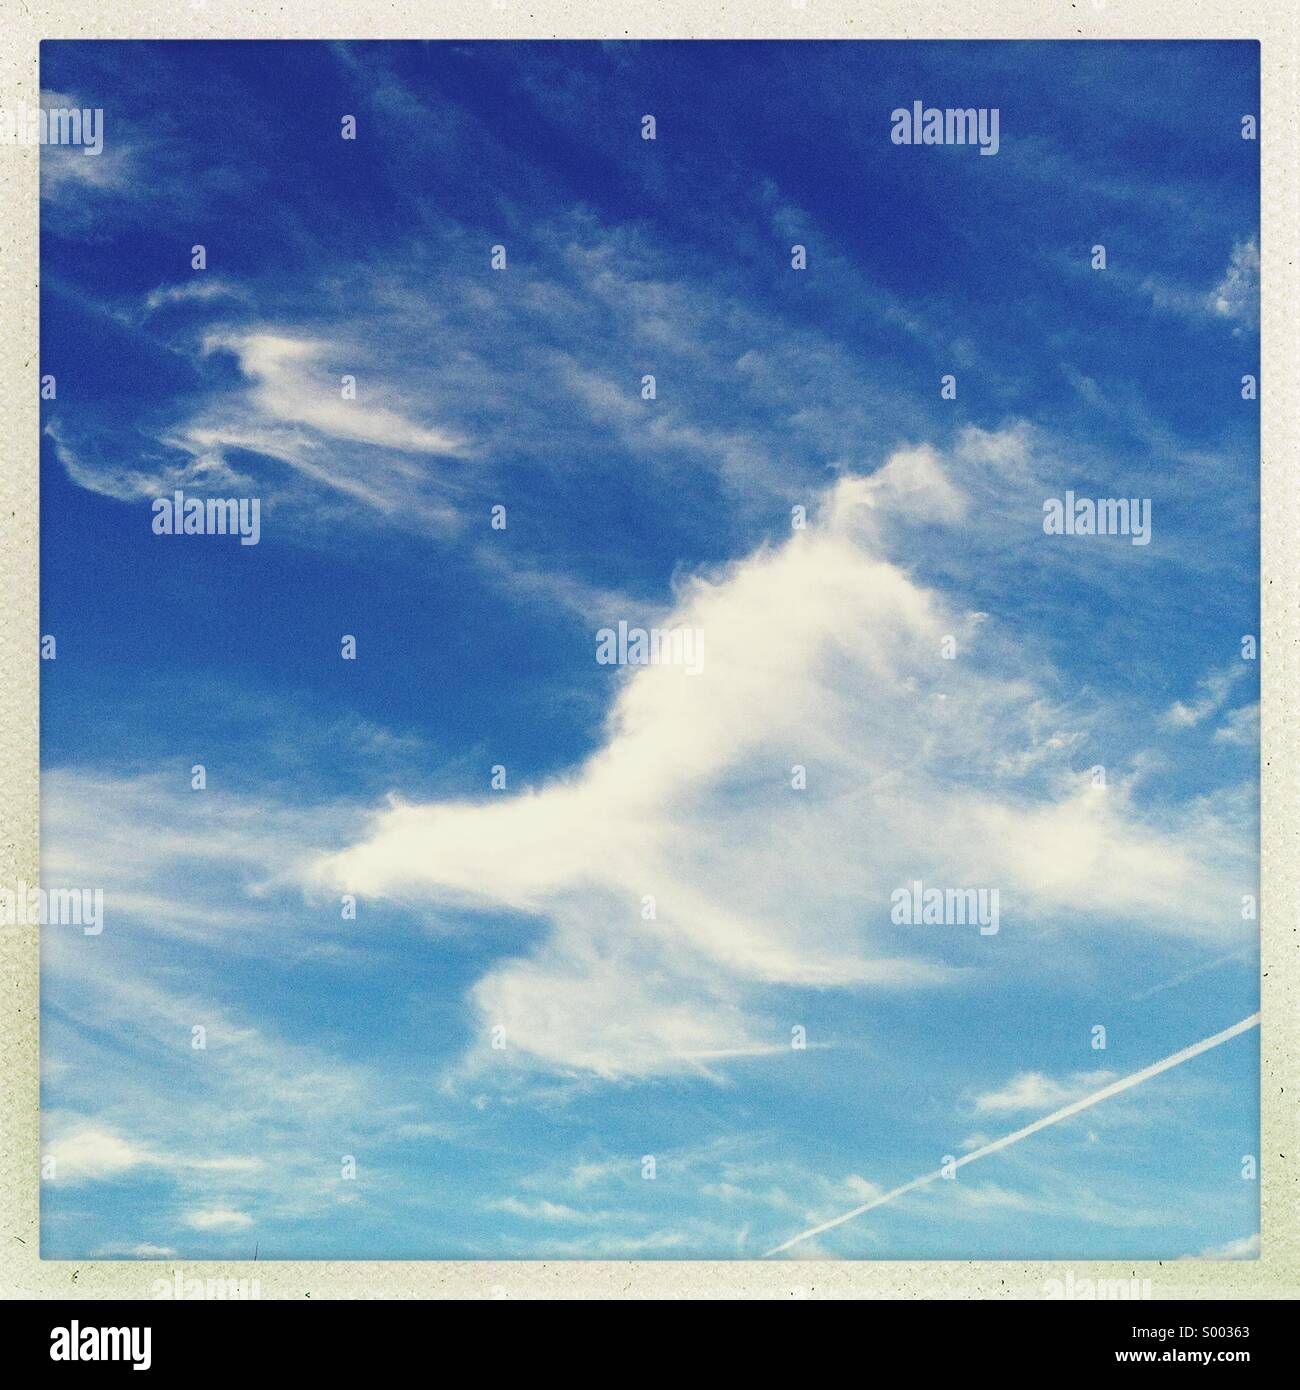 A cloud in the sky shaped like a bird / airplane - Stock Image